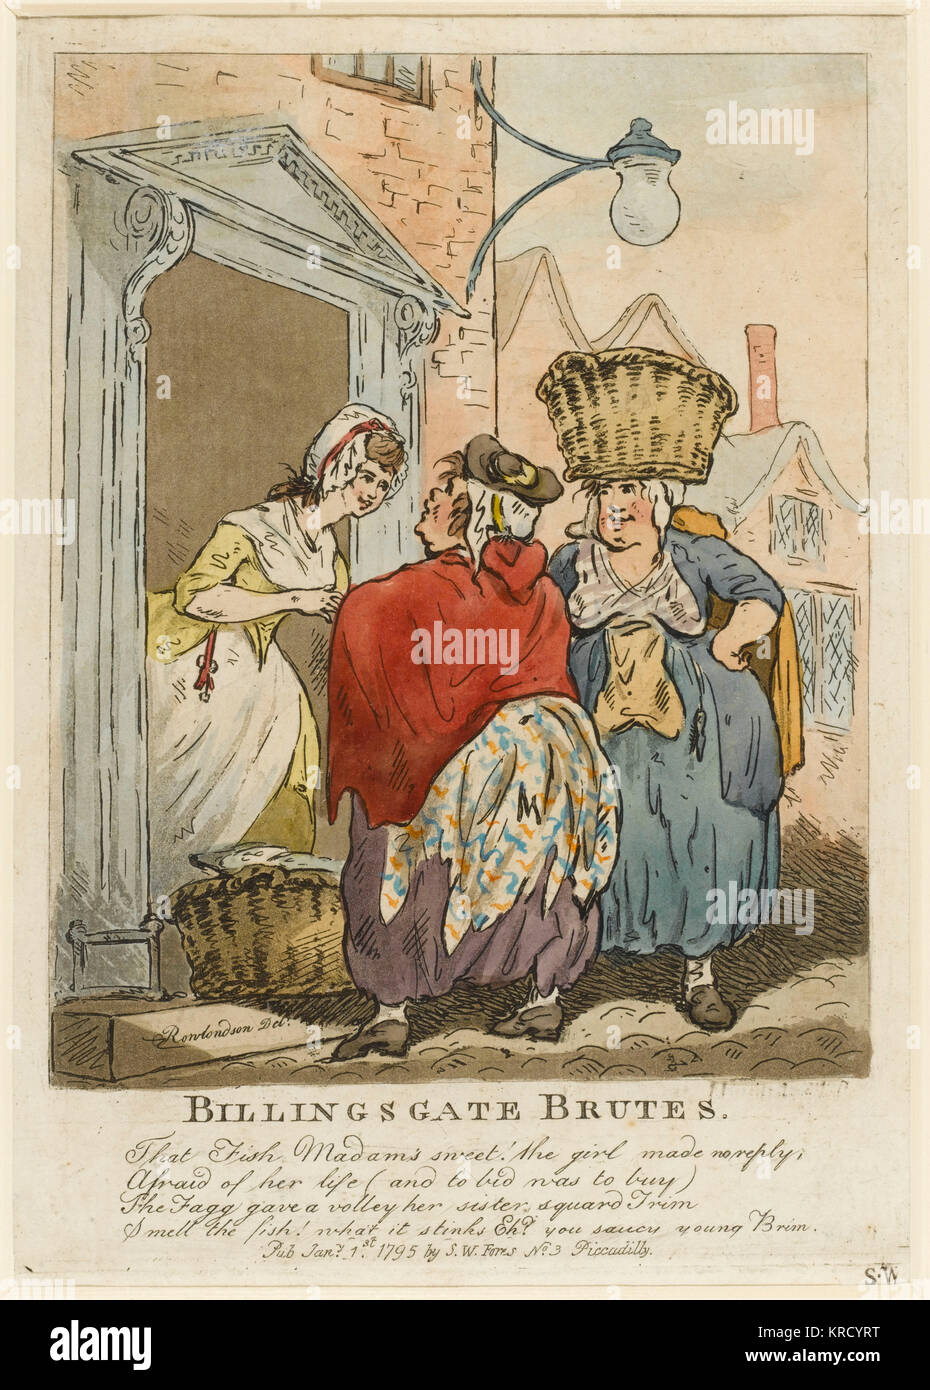 Satirical cartoon, Billingsgate Brutes.  A genre scene, seemingly charming. In reality a young woman at a doorway - Stock Image